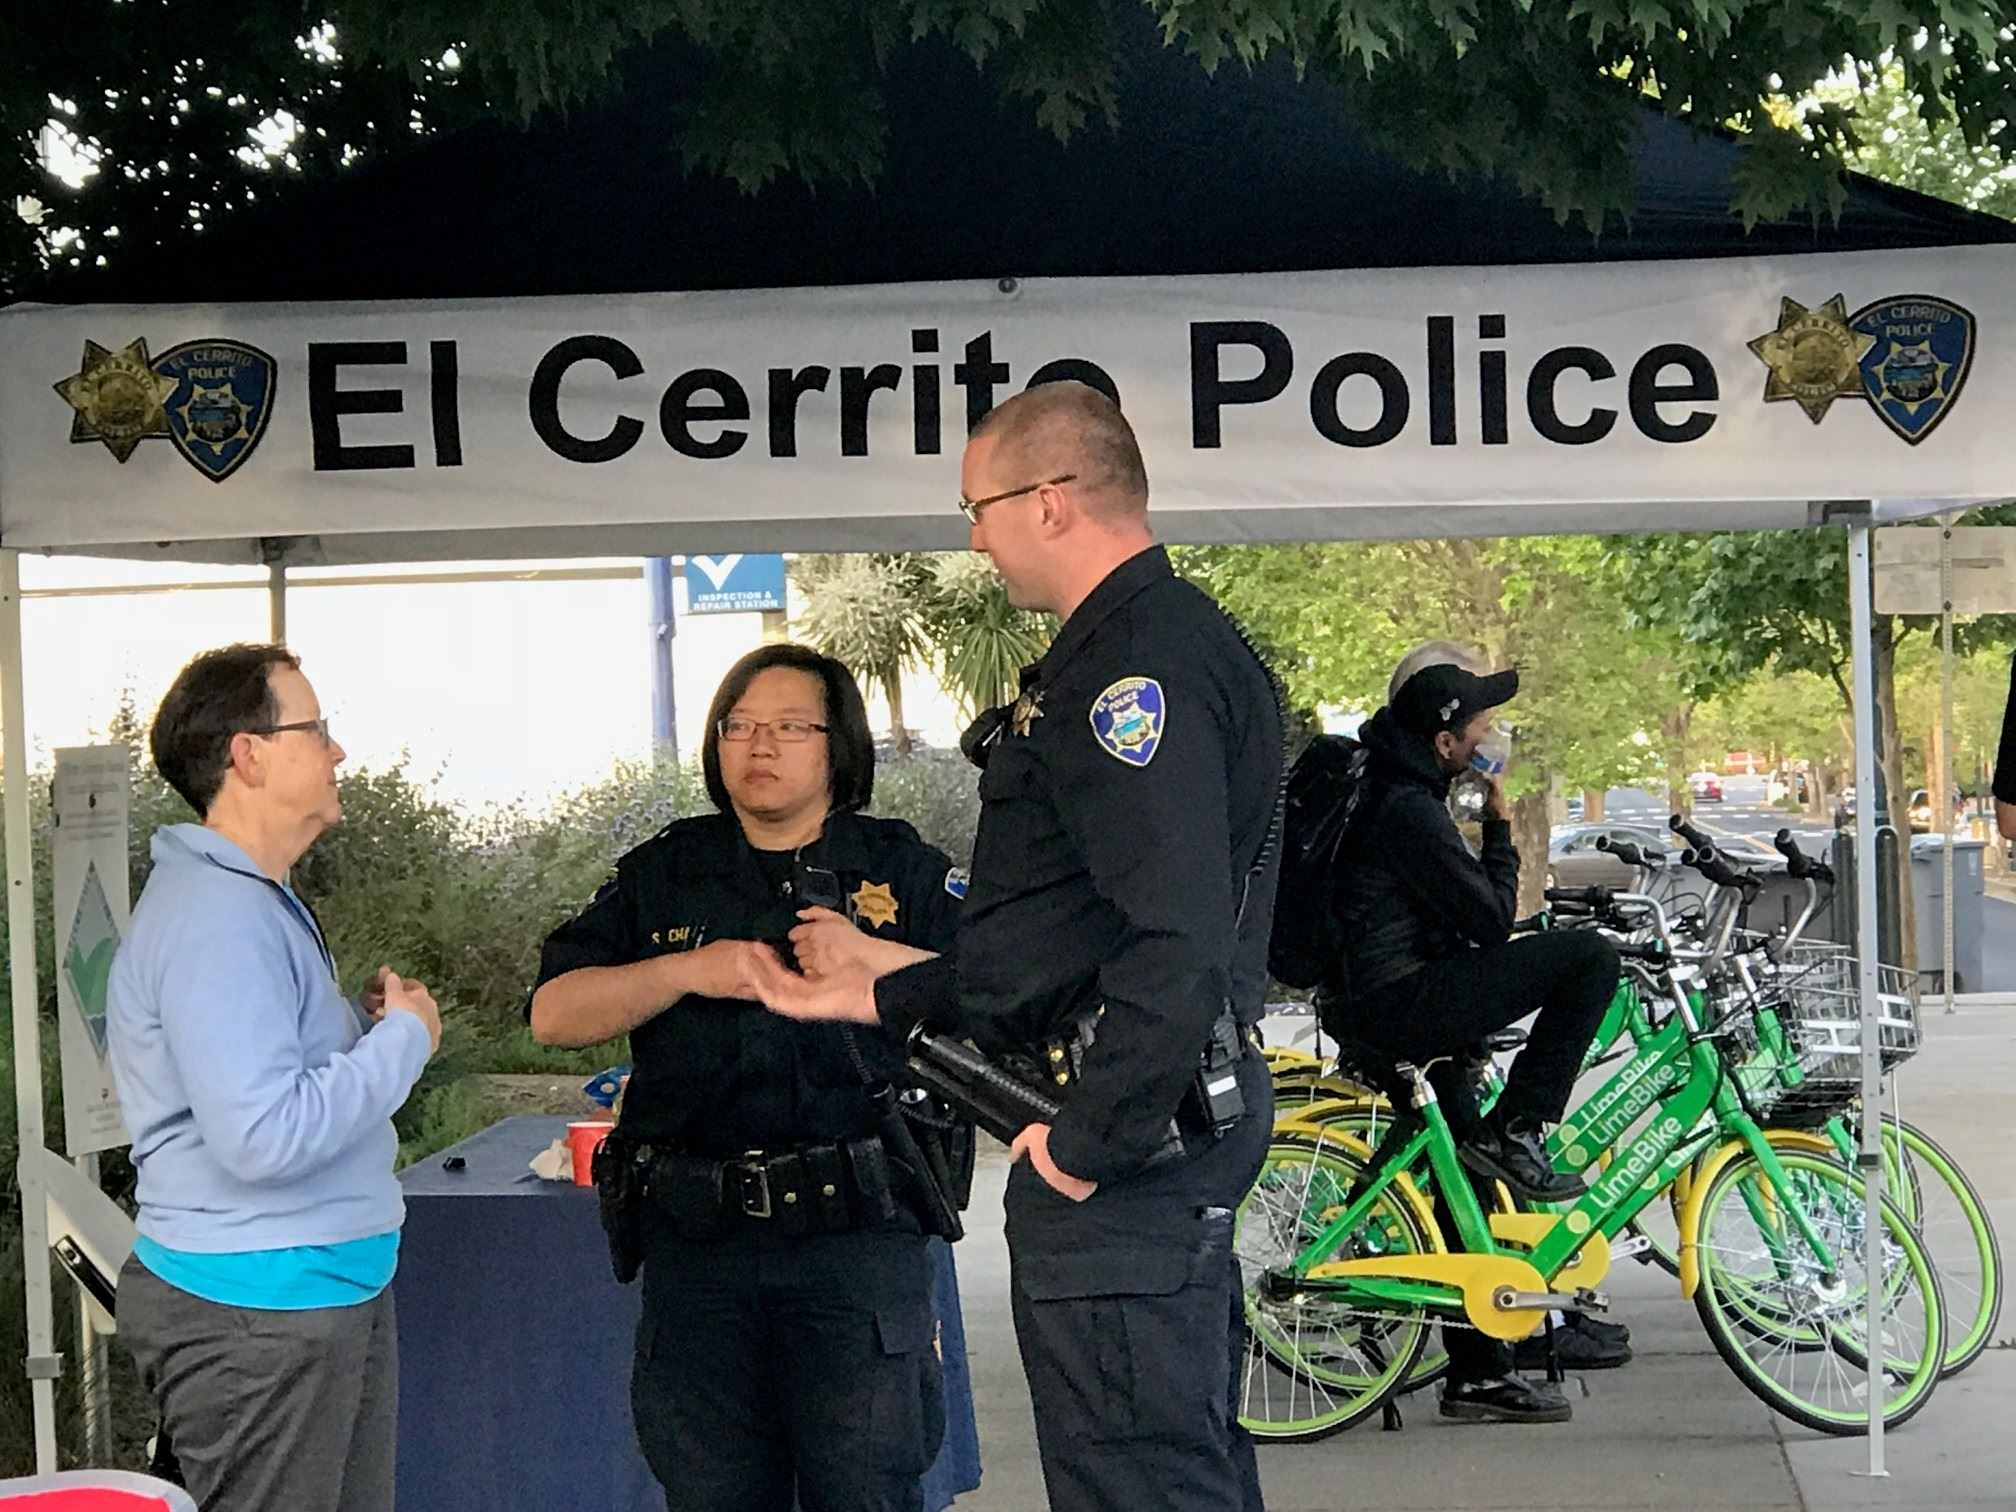 El Cerrito Police department at Bike to Work Day 2018